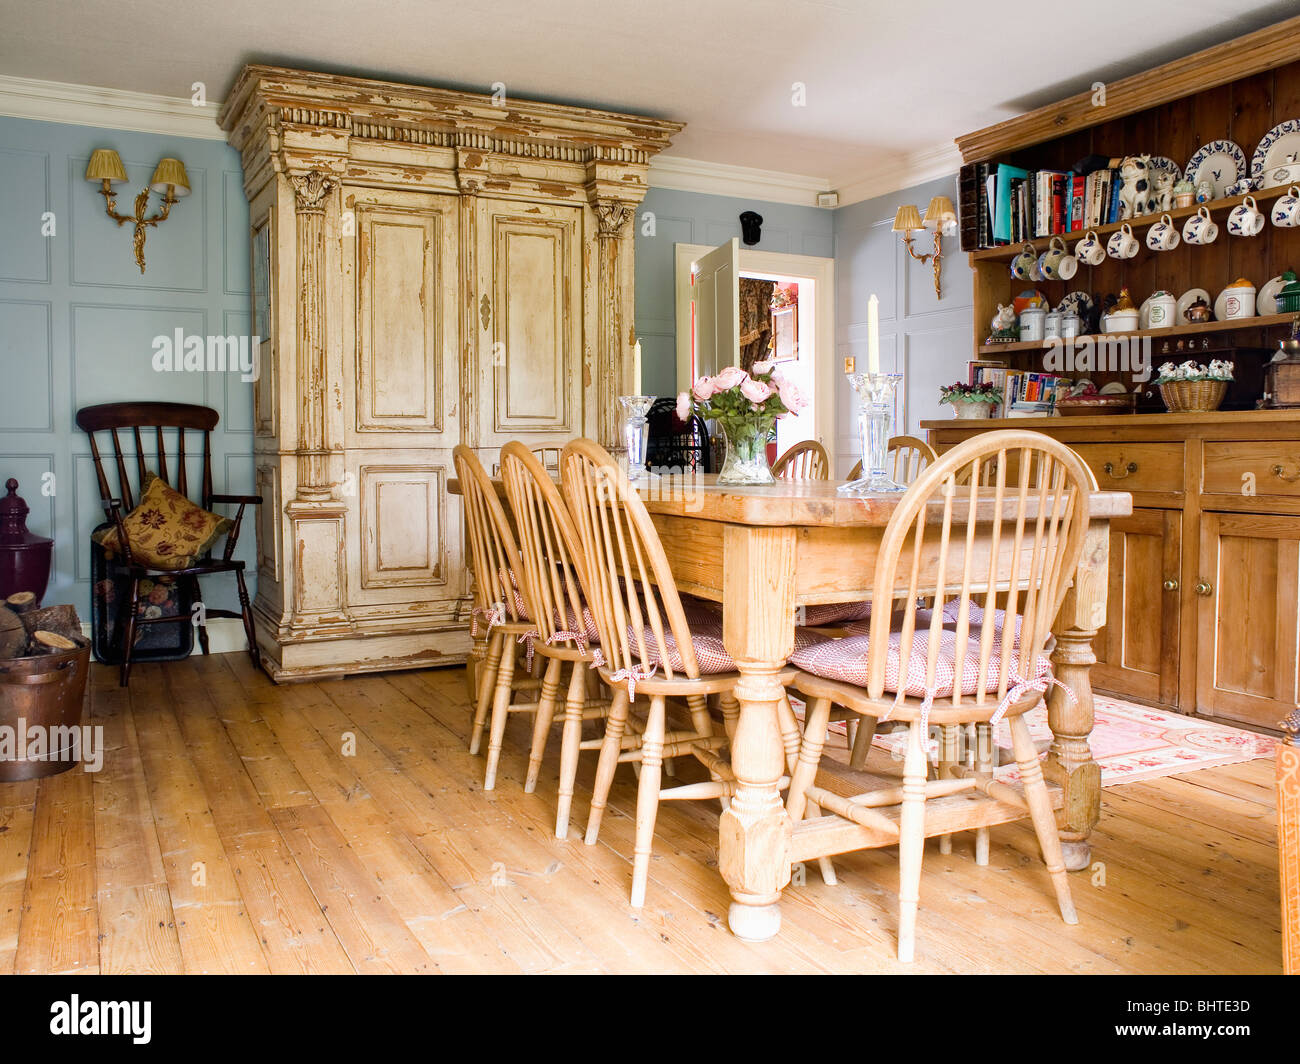 Country Dining Room Chairs Wheel Back Chairs And Pine Table In Country Dining Room With Large